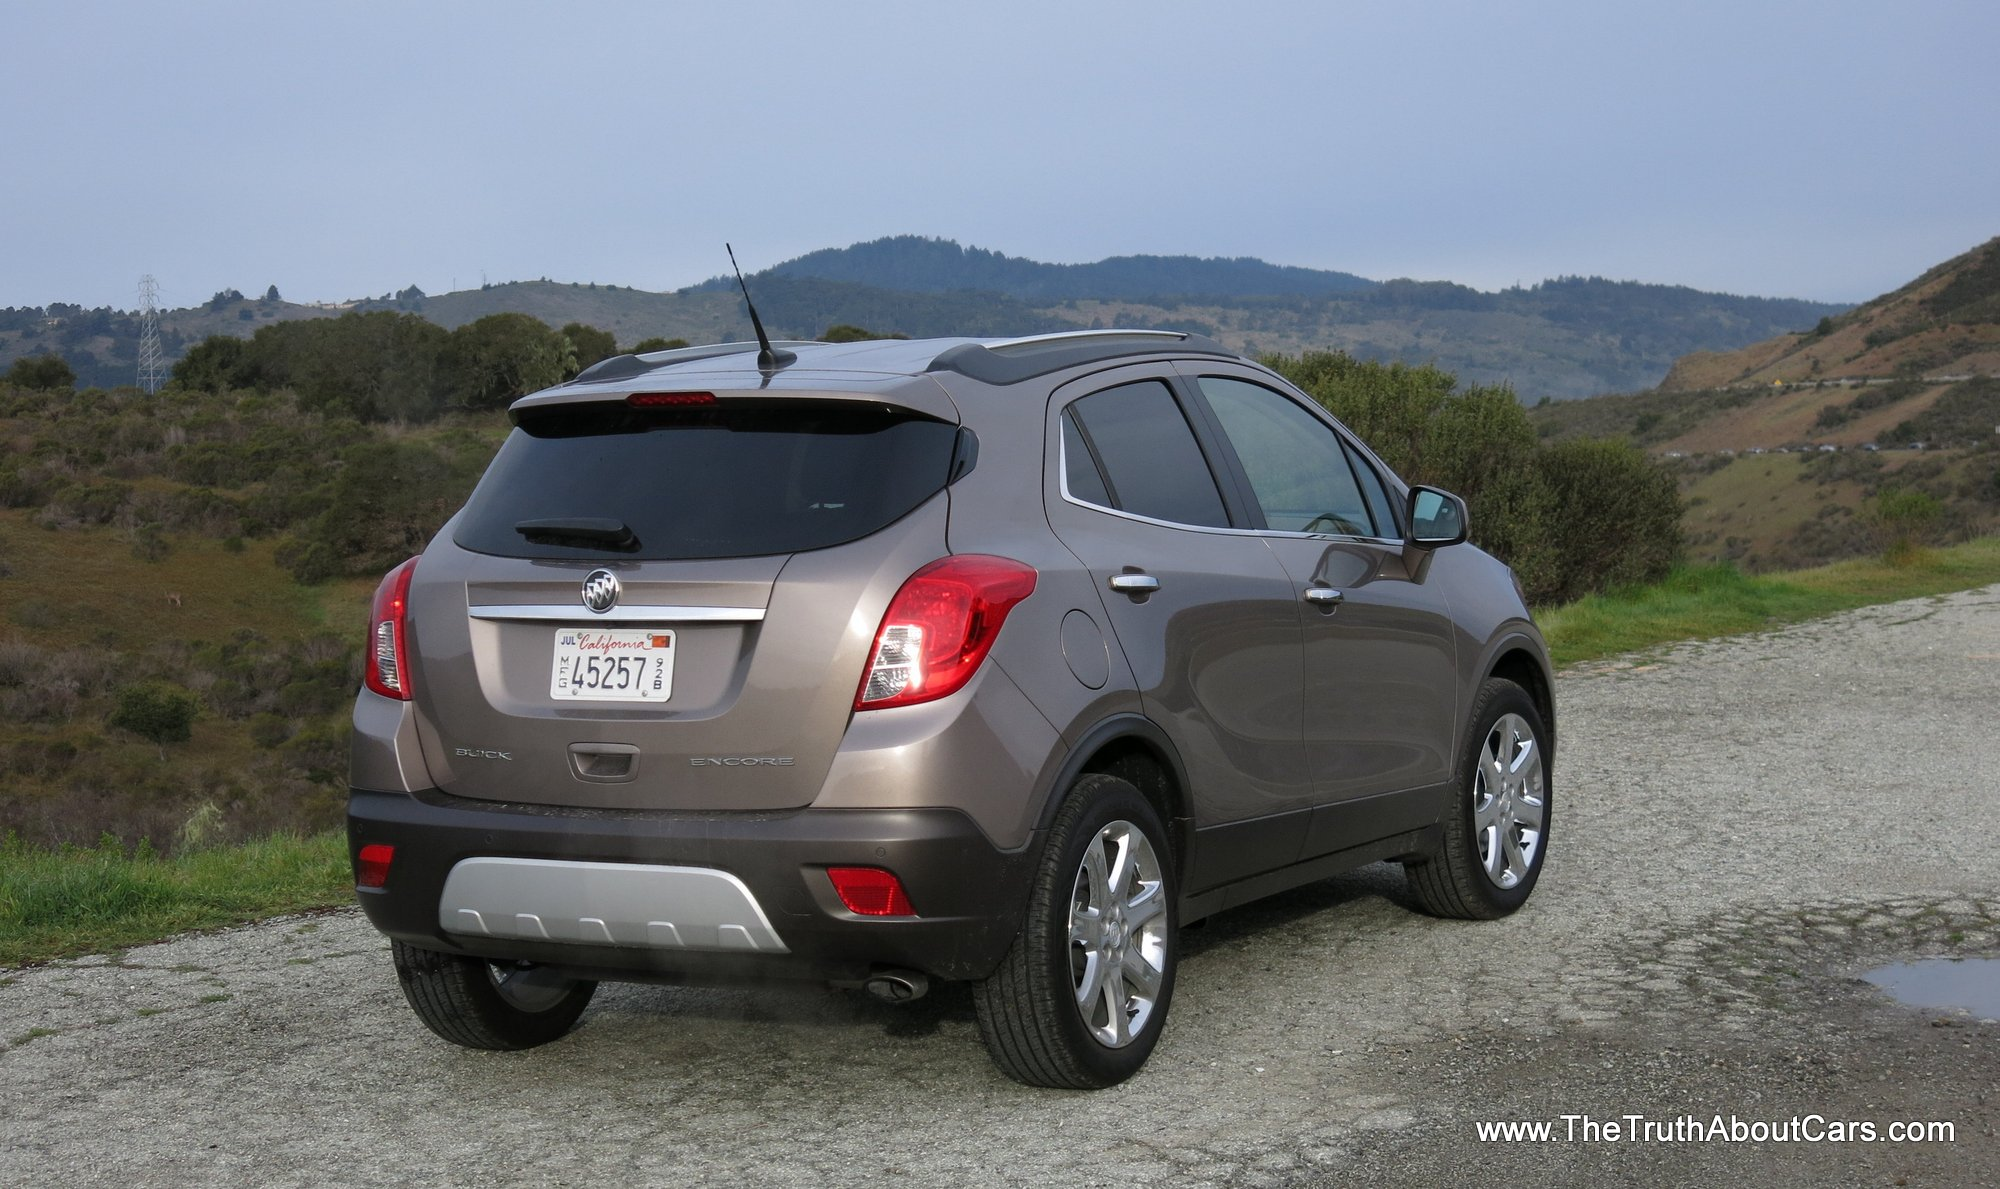 Review: 2013 Buick Encore (Video) - The Truth About Cars